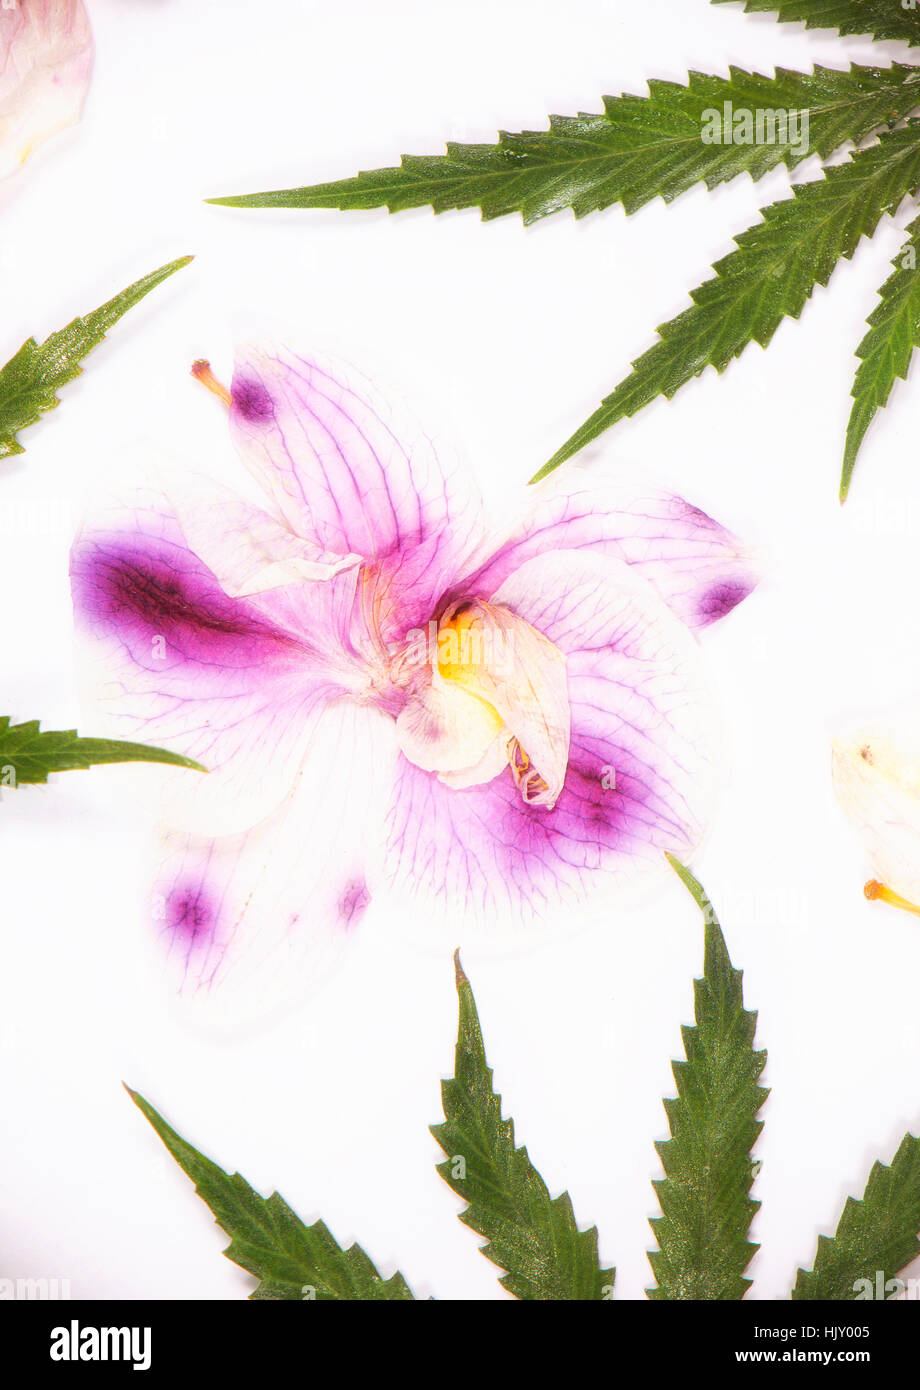 Cannabis leaves and dried pink orquid petals isolated over white background - marijuana spa concept Stock Photo